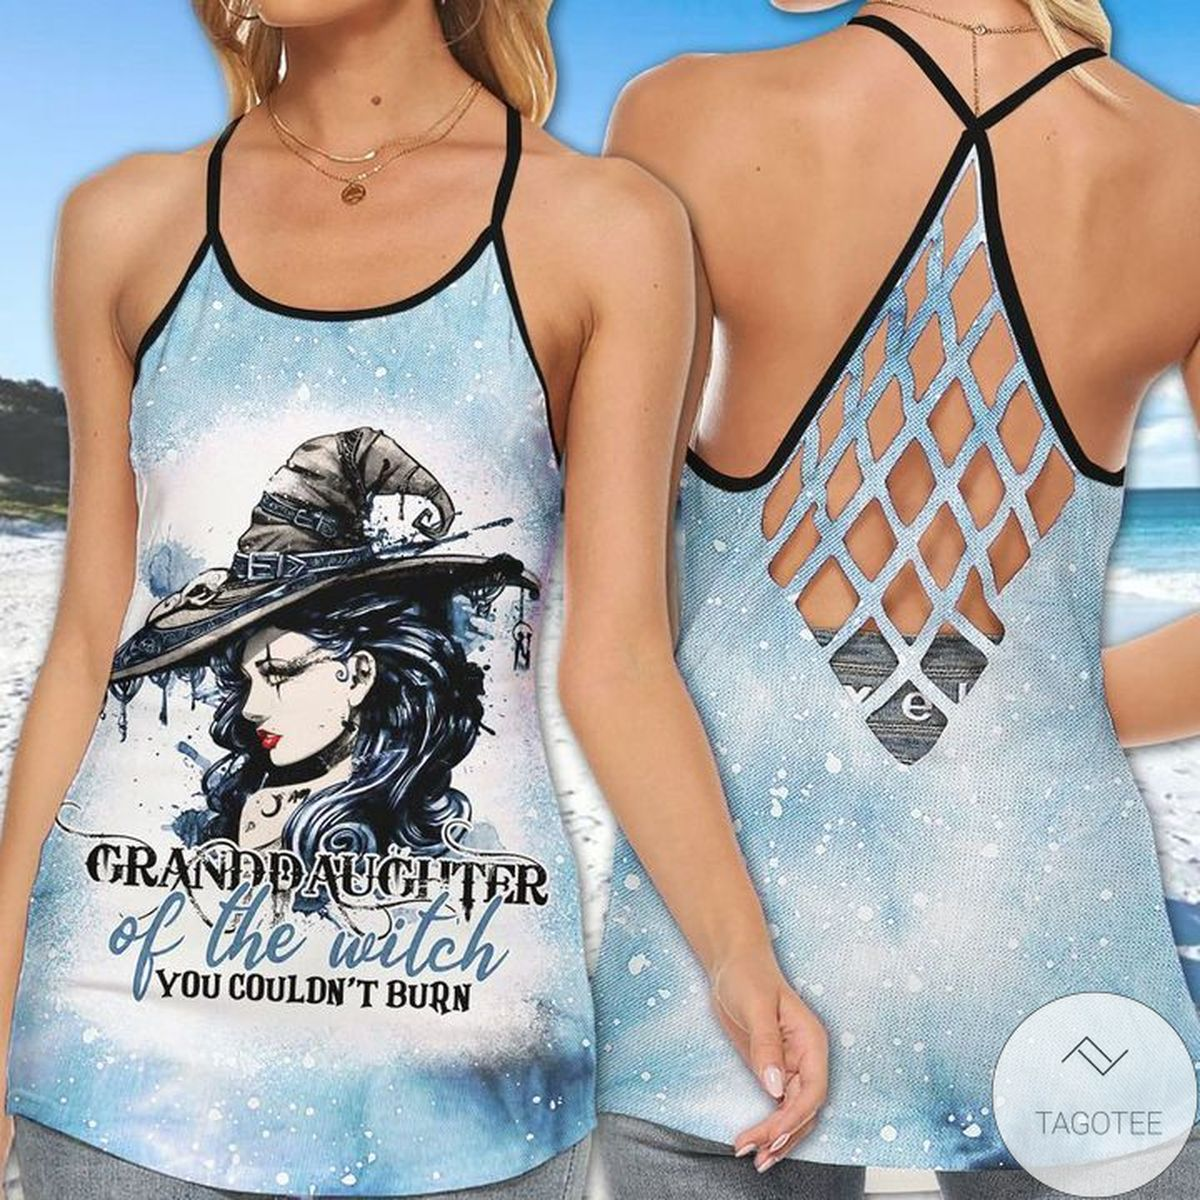 Granddaughter Of Witch You Couldn't Burn Criss Cross Tank Top